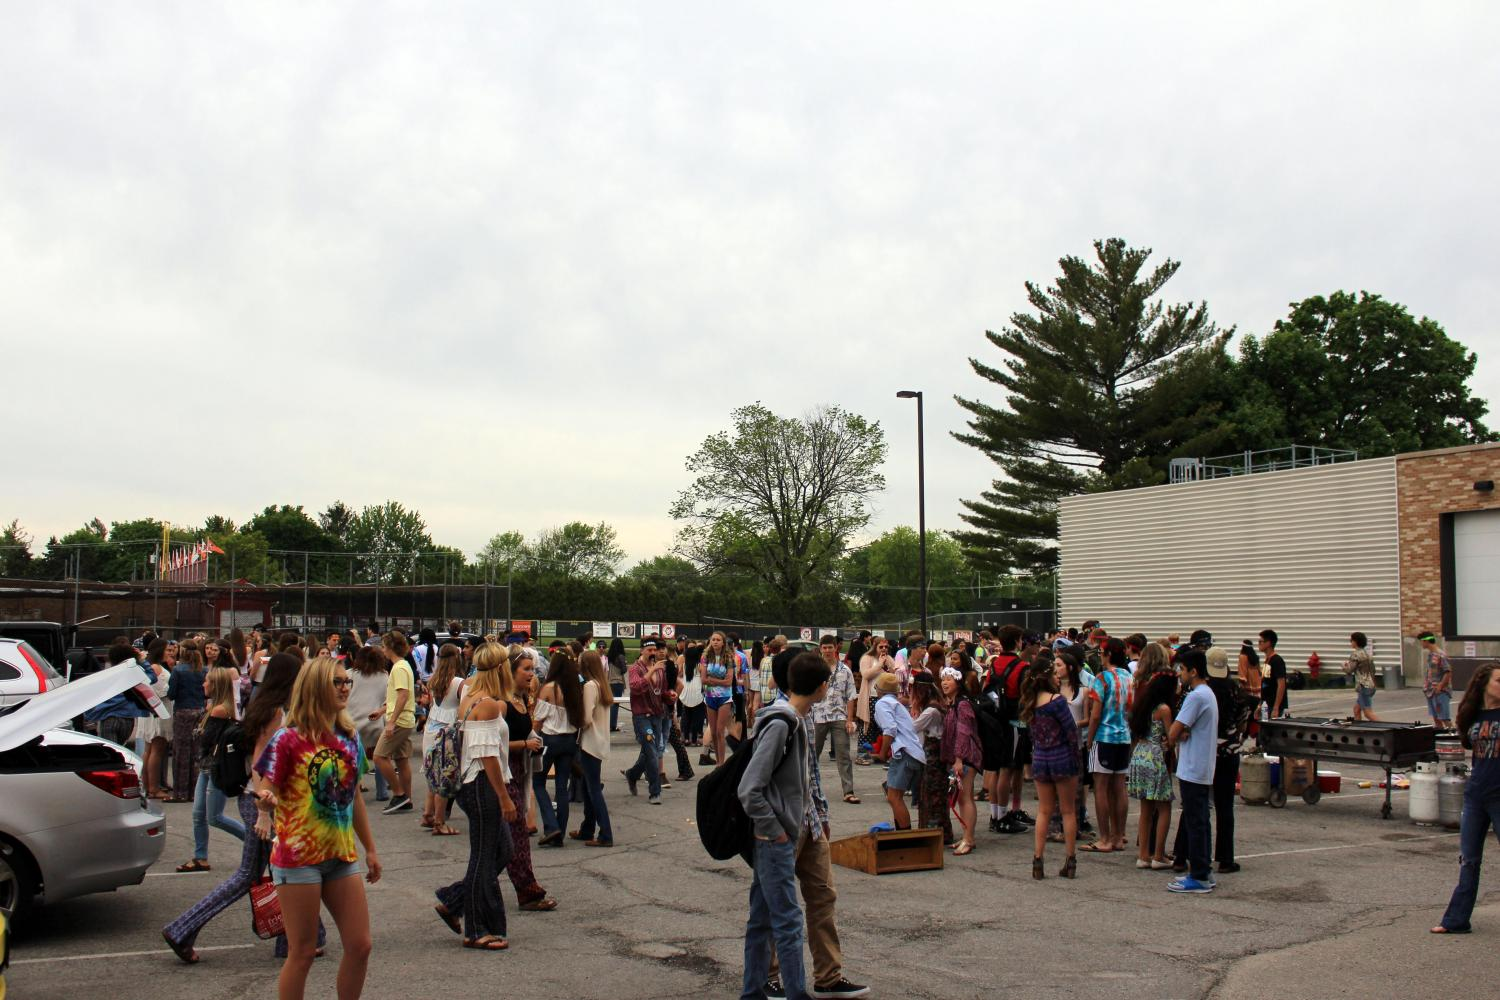 The tailgate brings the incoming senior class together as a way to kick off the final year of high school.  Last year the theme was Woodstock, but this year it will be USA.